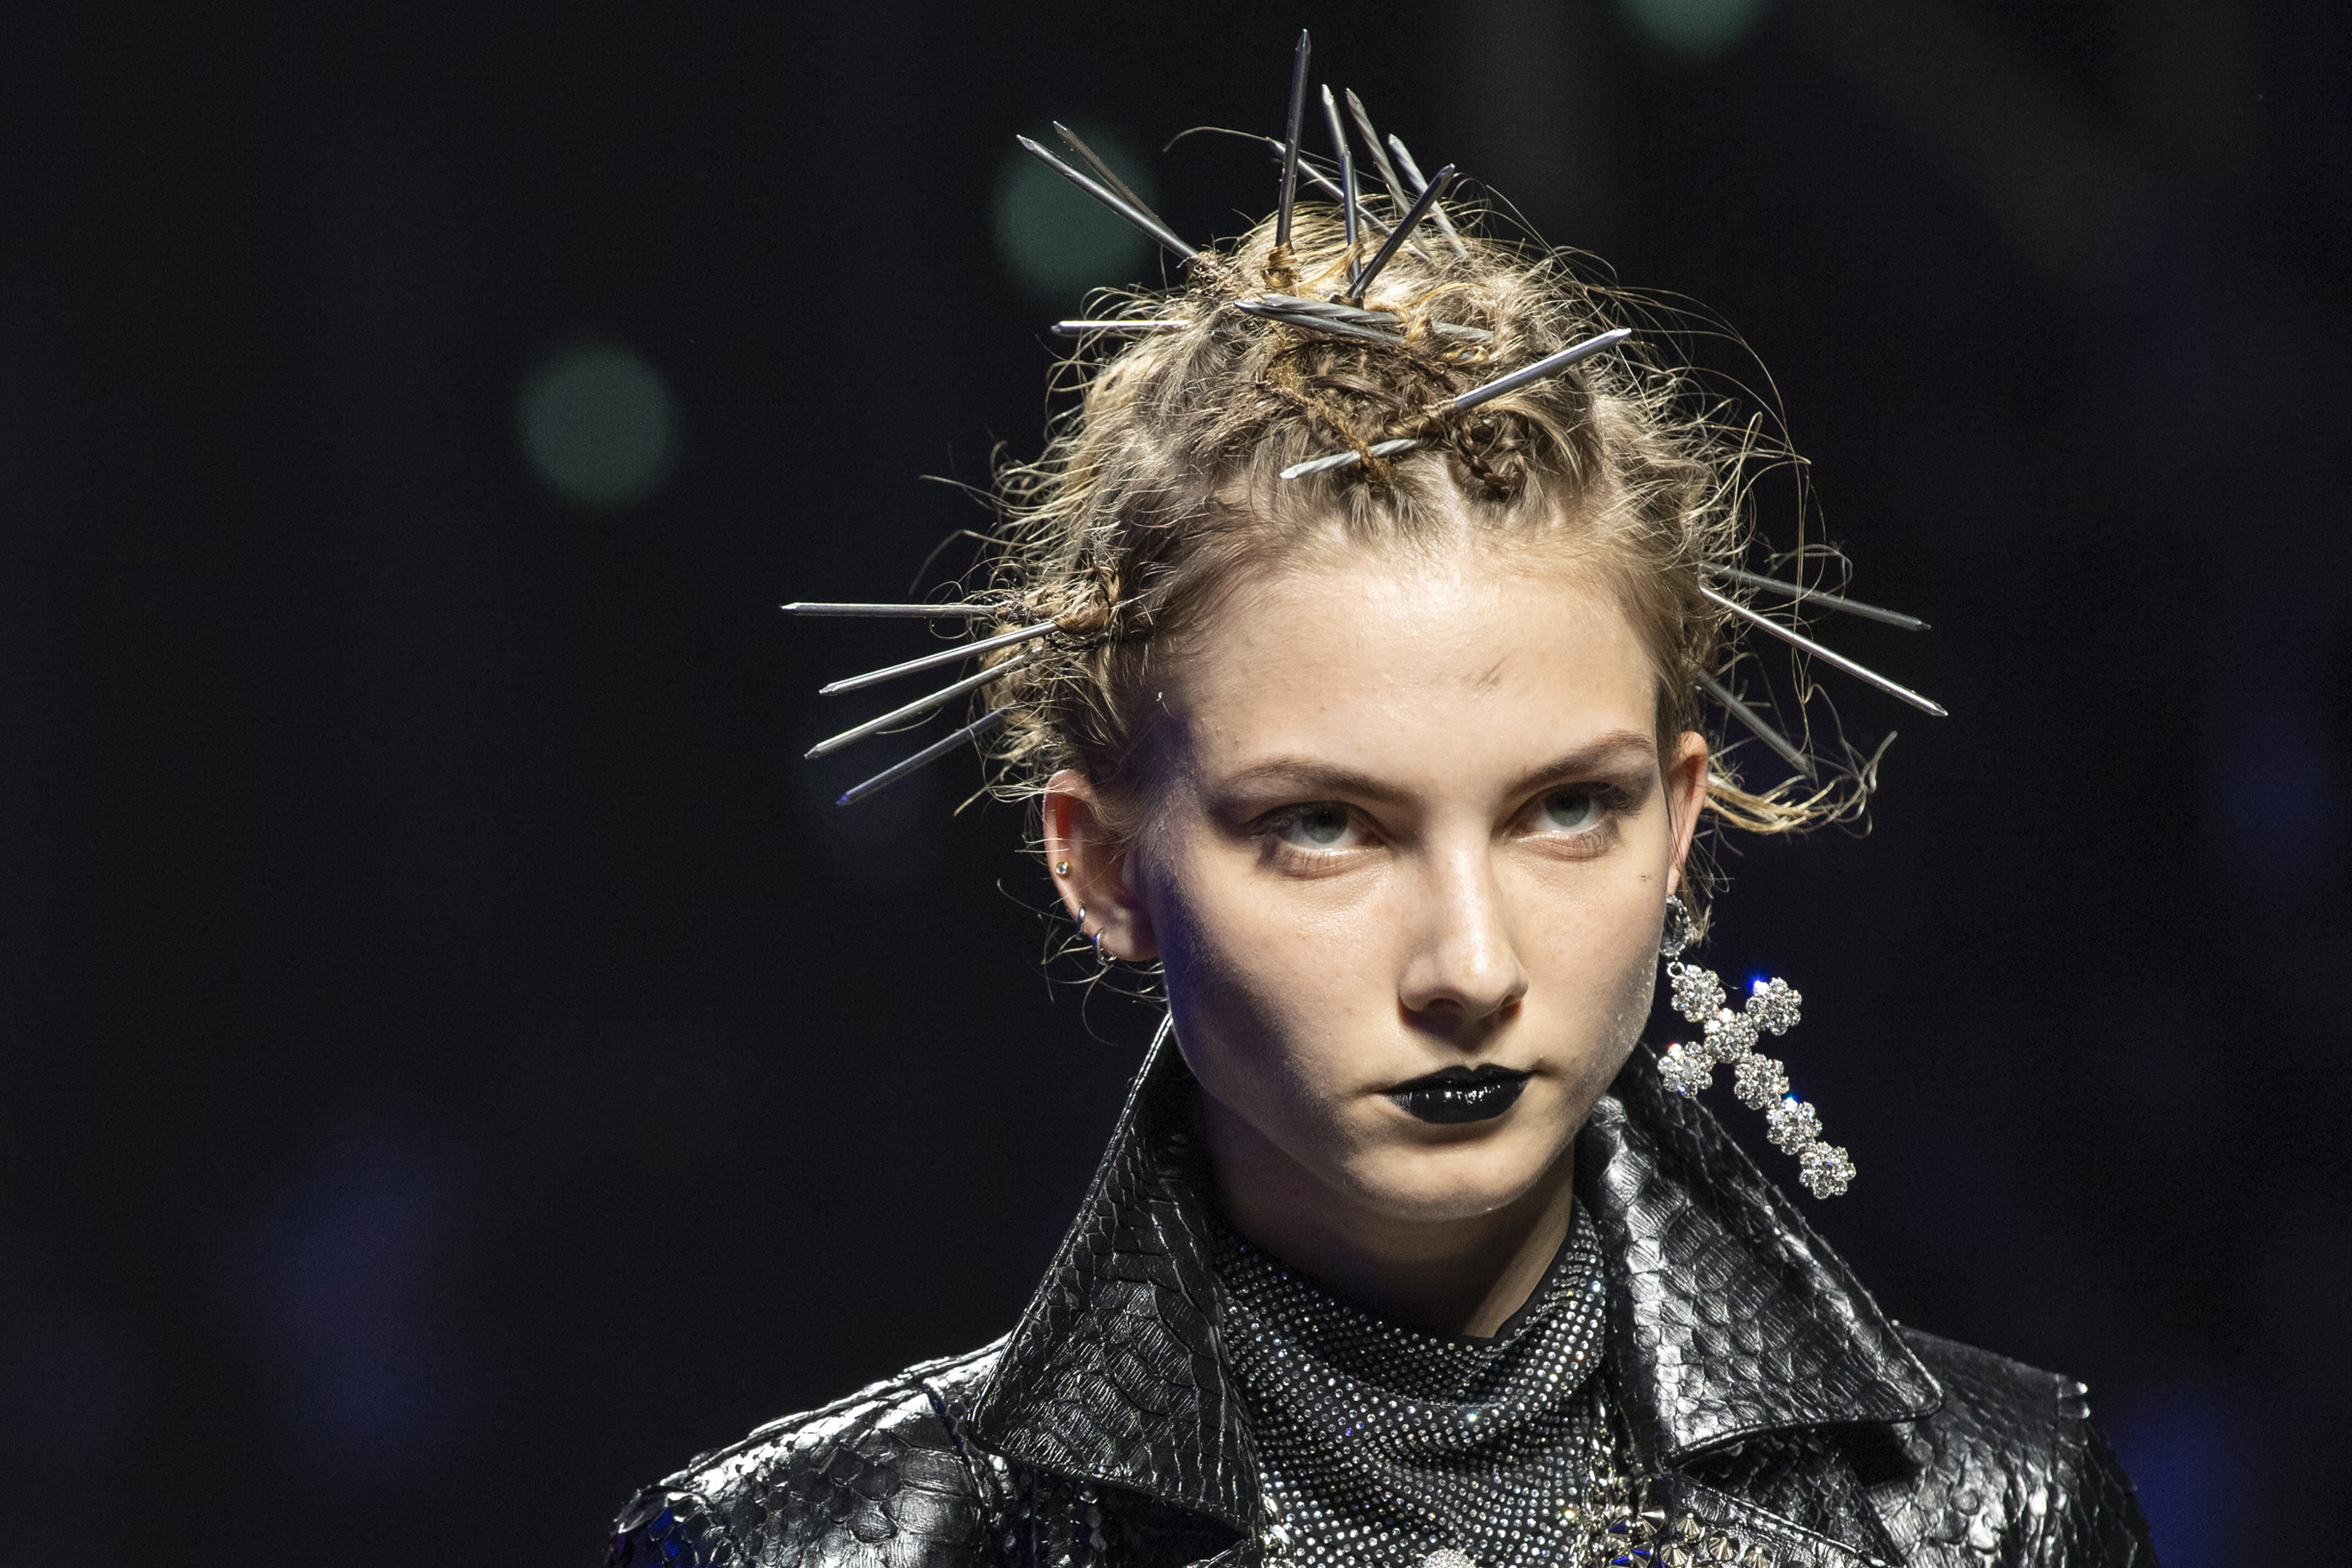 Philipp Plein Spring 2020 Men's Fashion Show Details